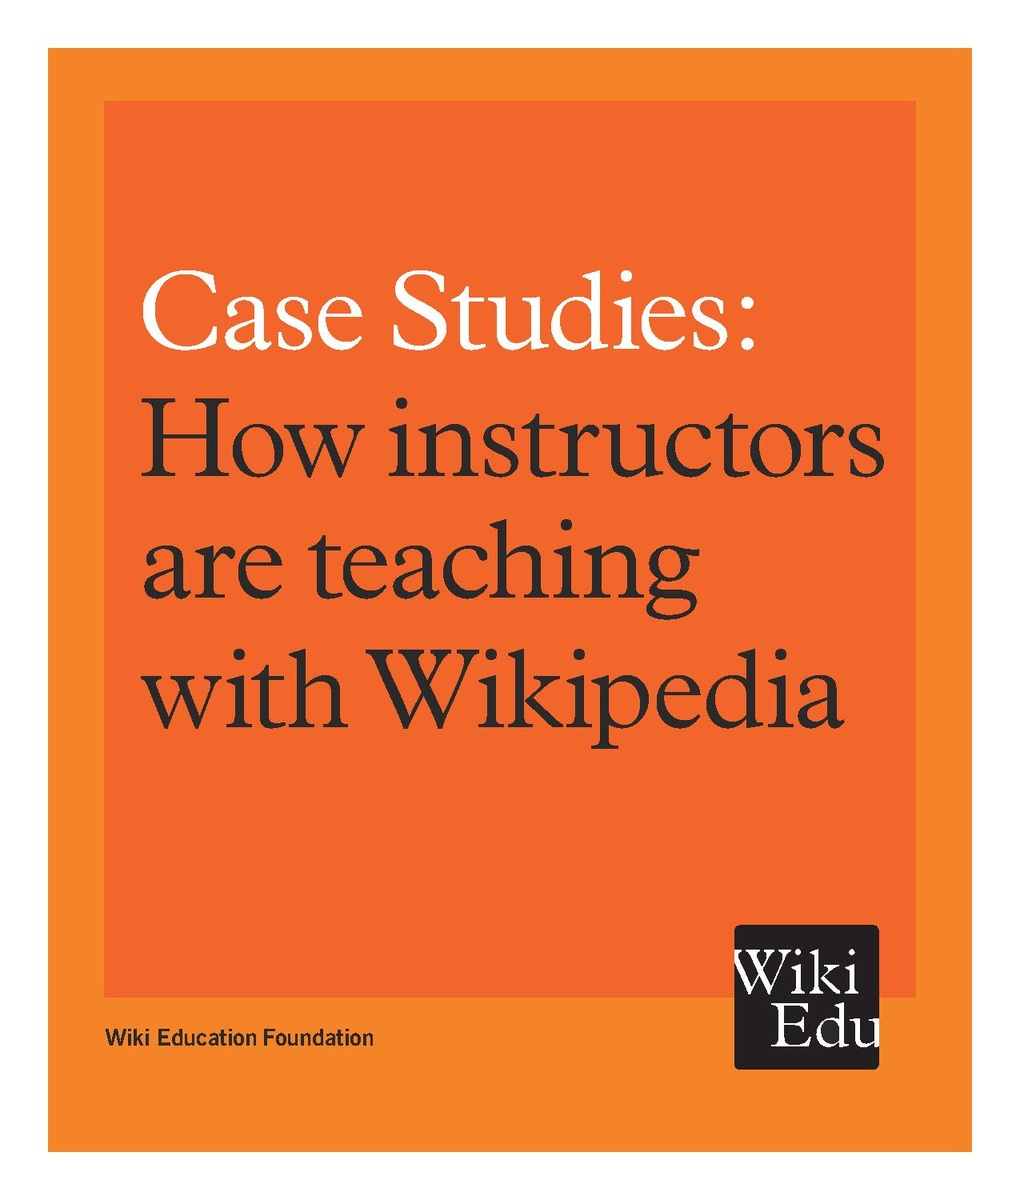 case studies in educational research Case studies are stories that are used as a teaching tool to show the application of a theory or concept to real situations dependent on the goal they are meant to fulfill, cases can be fact-driven and deductive where there is a correct answer, or they can be context driven where multiple solutions are possible.